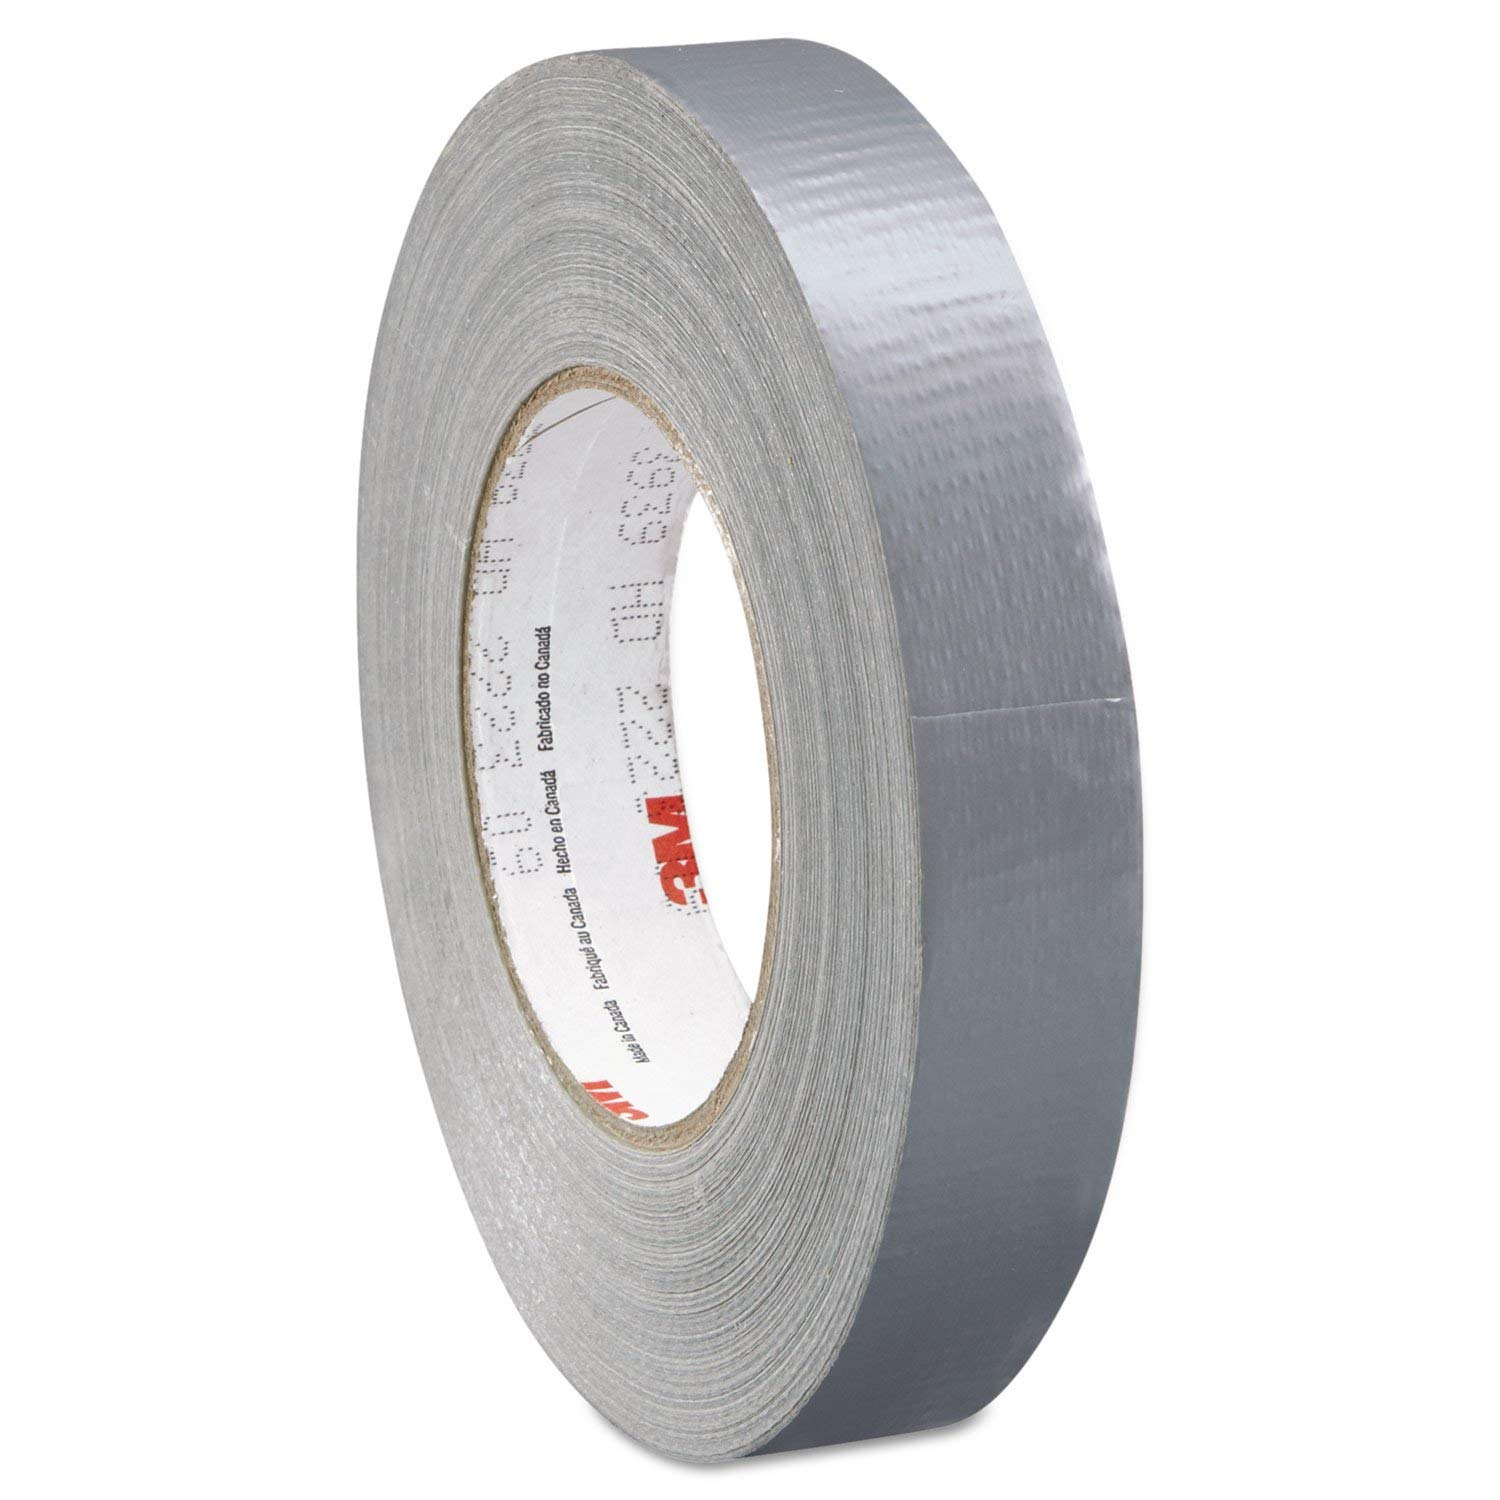 3M 3939 Heavy Duty Duct Tape, 200 Degree F Performance Temperature, 25 lbs/in Tensile Strength, 60 yds Length x 0.94